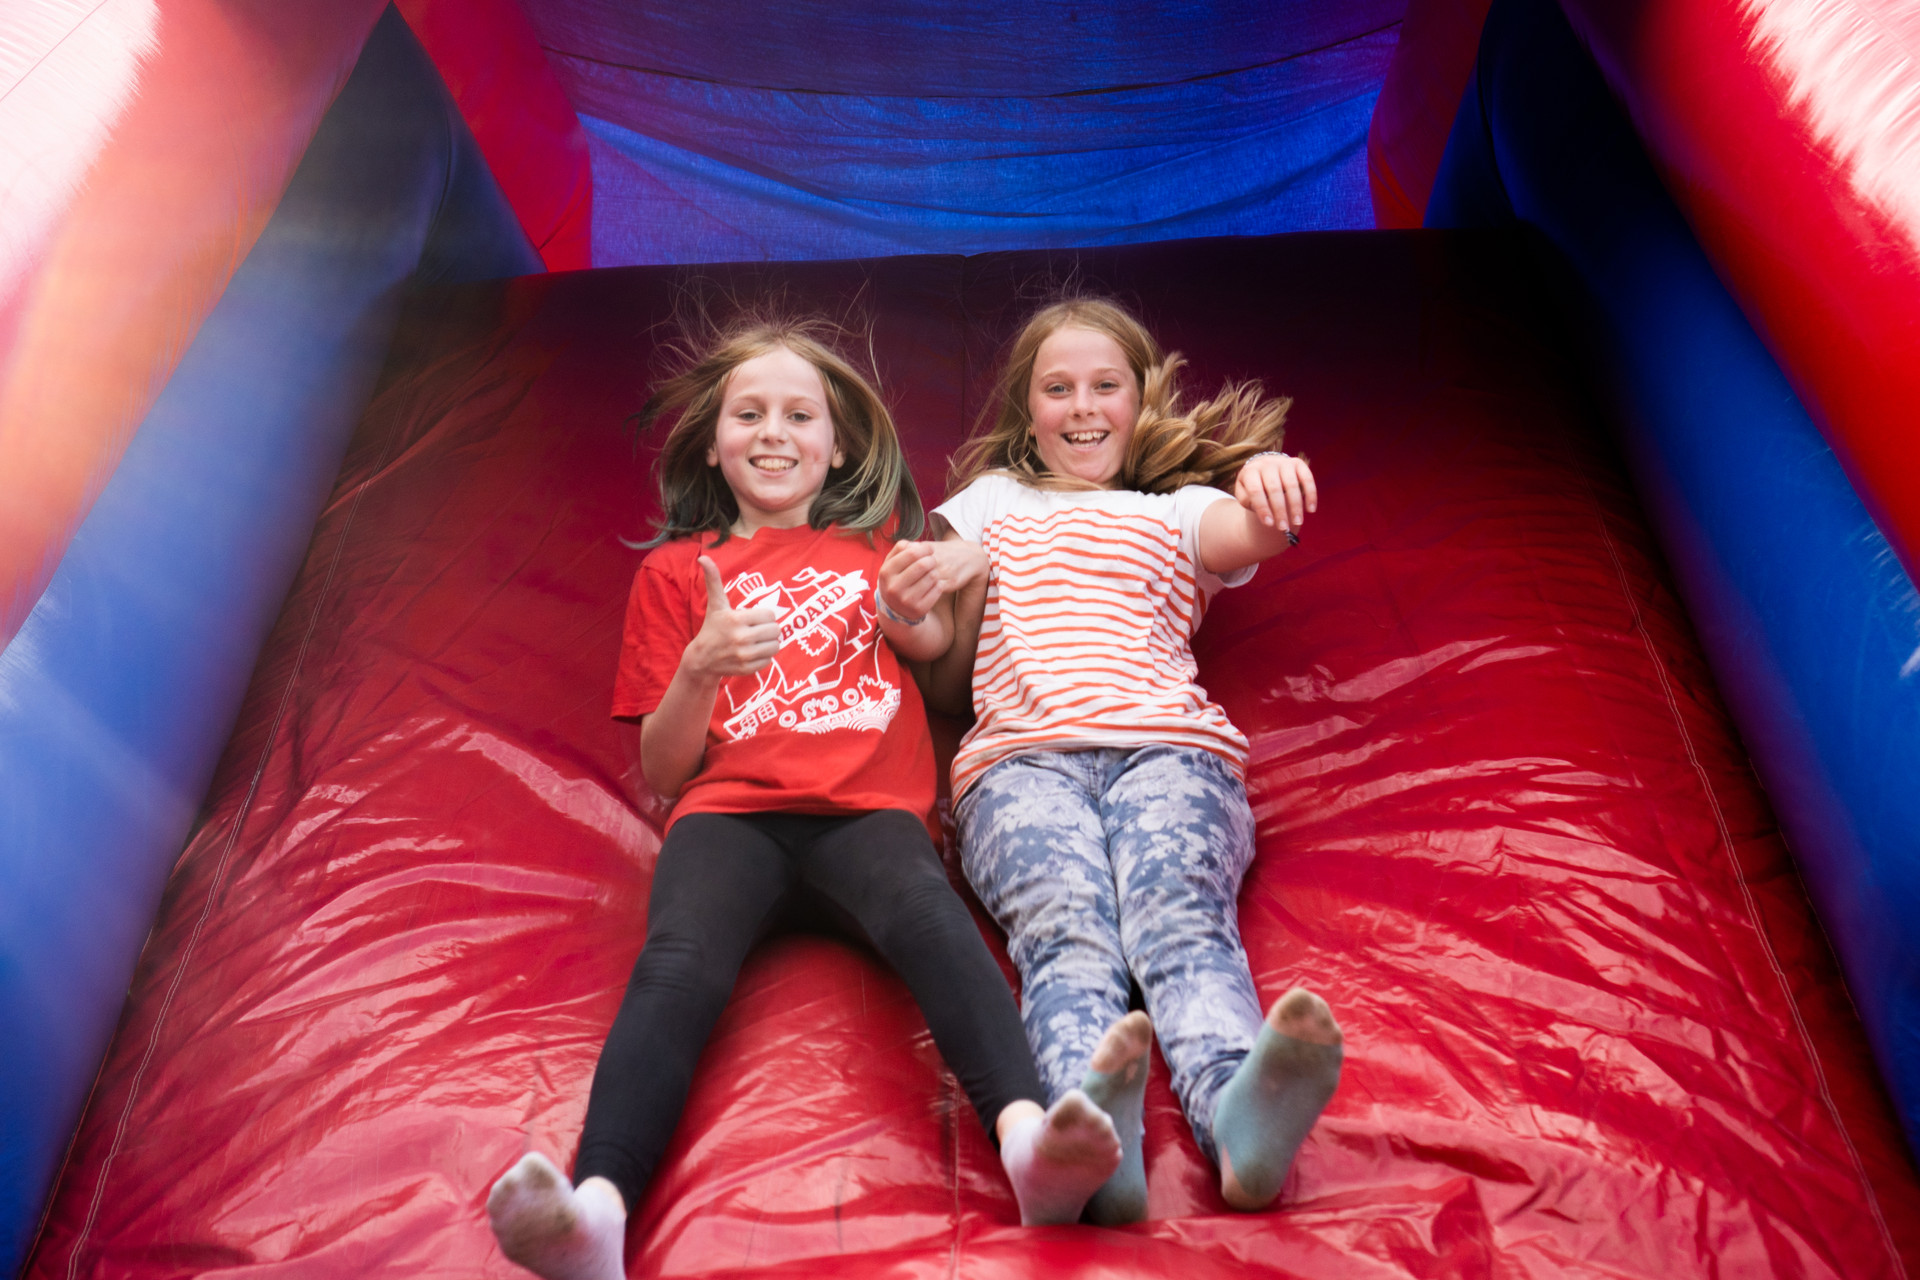 Two smiling campers on an inflatable obstacle course